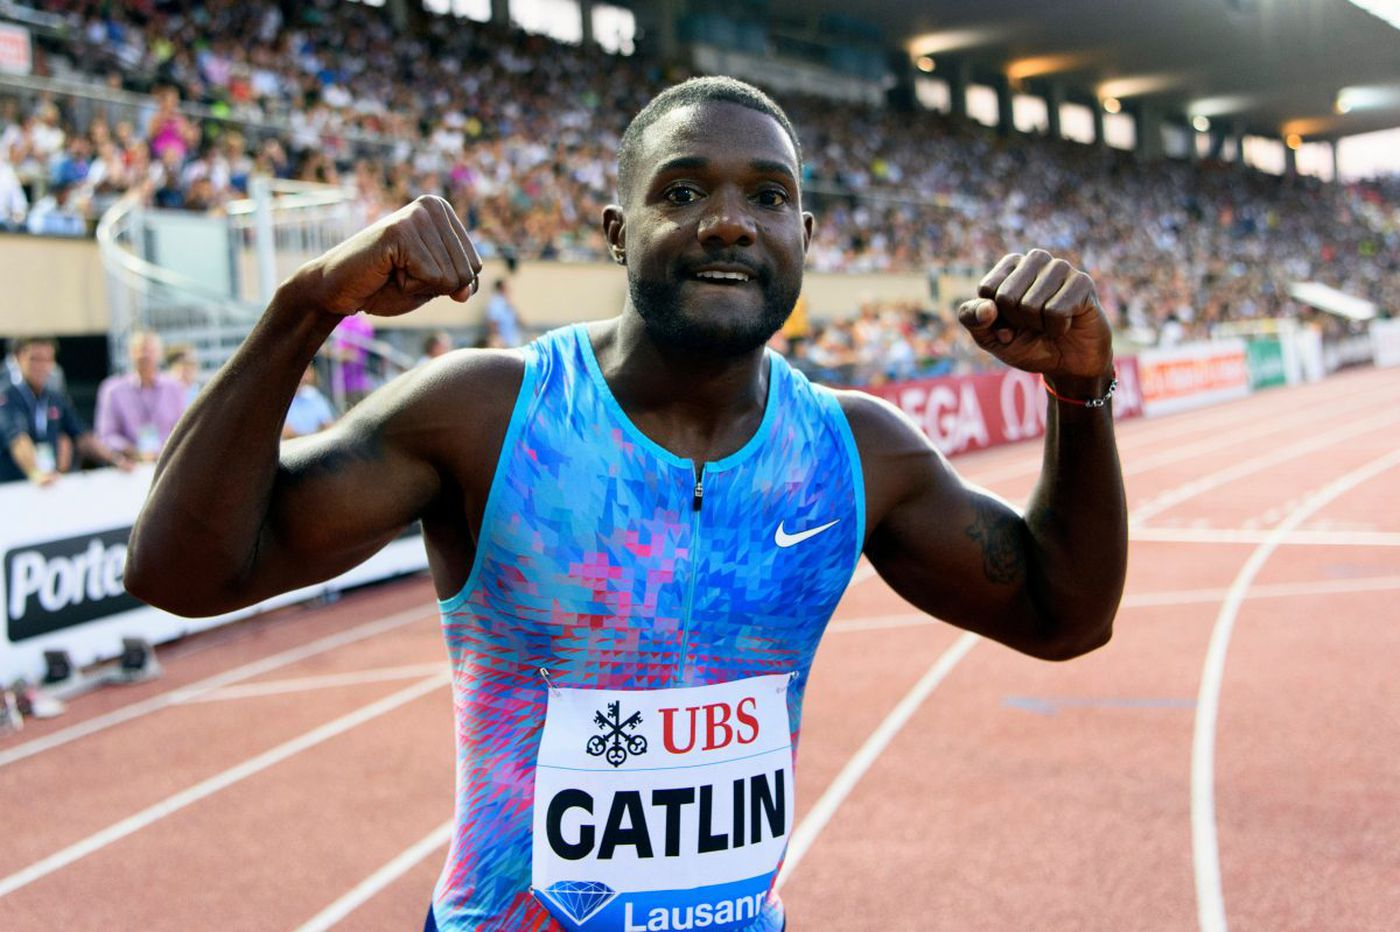 Justin Gatlin, Wallace Spearmon expected to compete in 'USA vs. the World' at Penn Relays